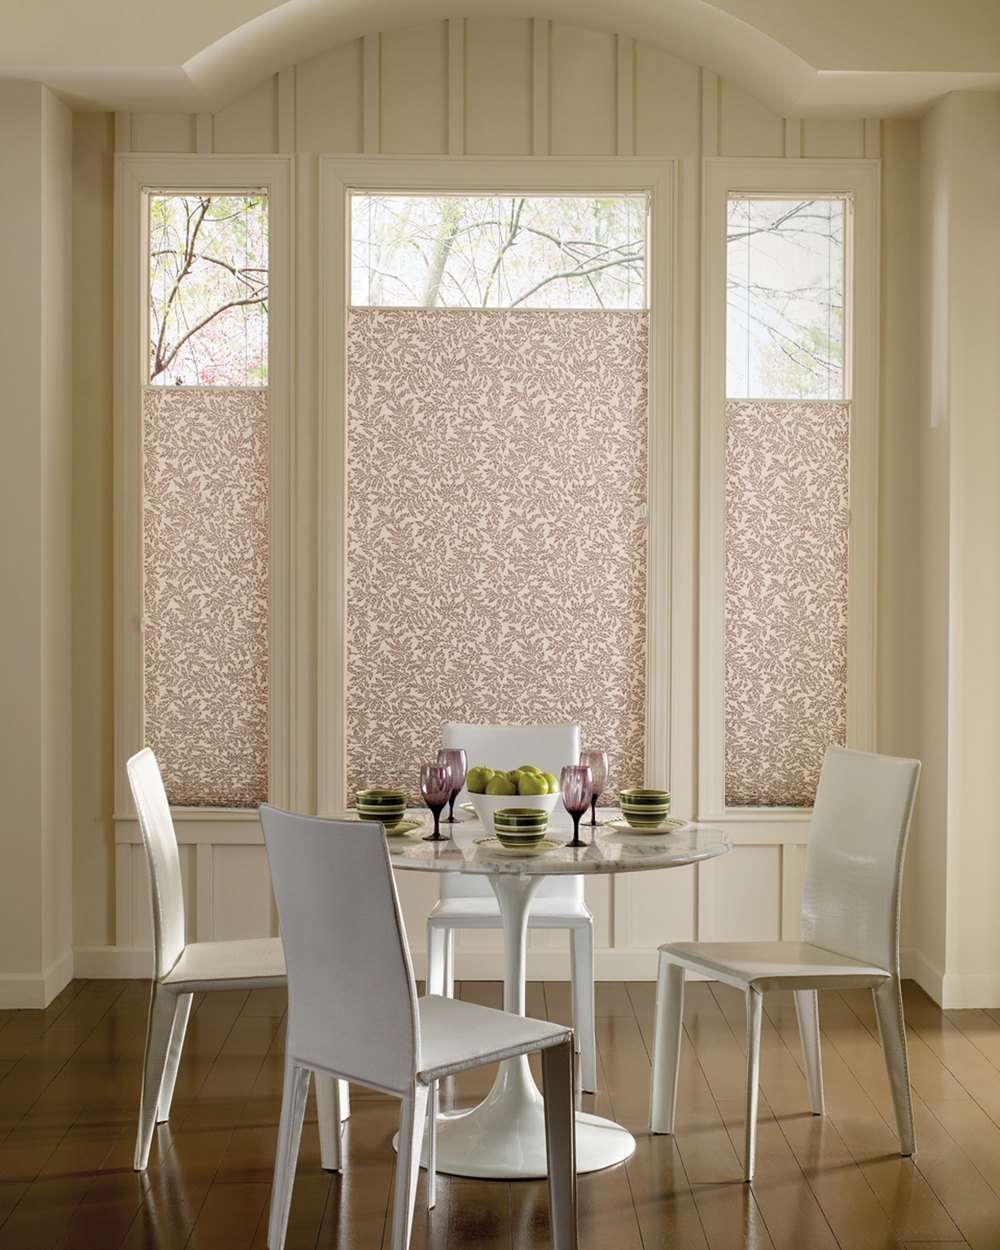 Home gt hunter douglas gt shades gt hunter douglas designer roller shades - Pleated Shades